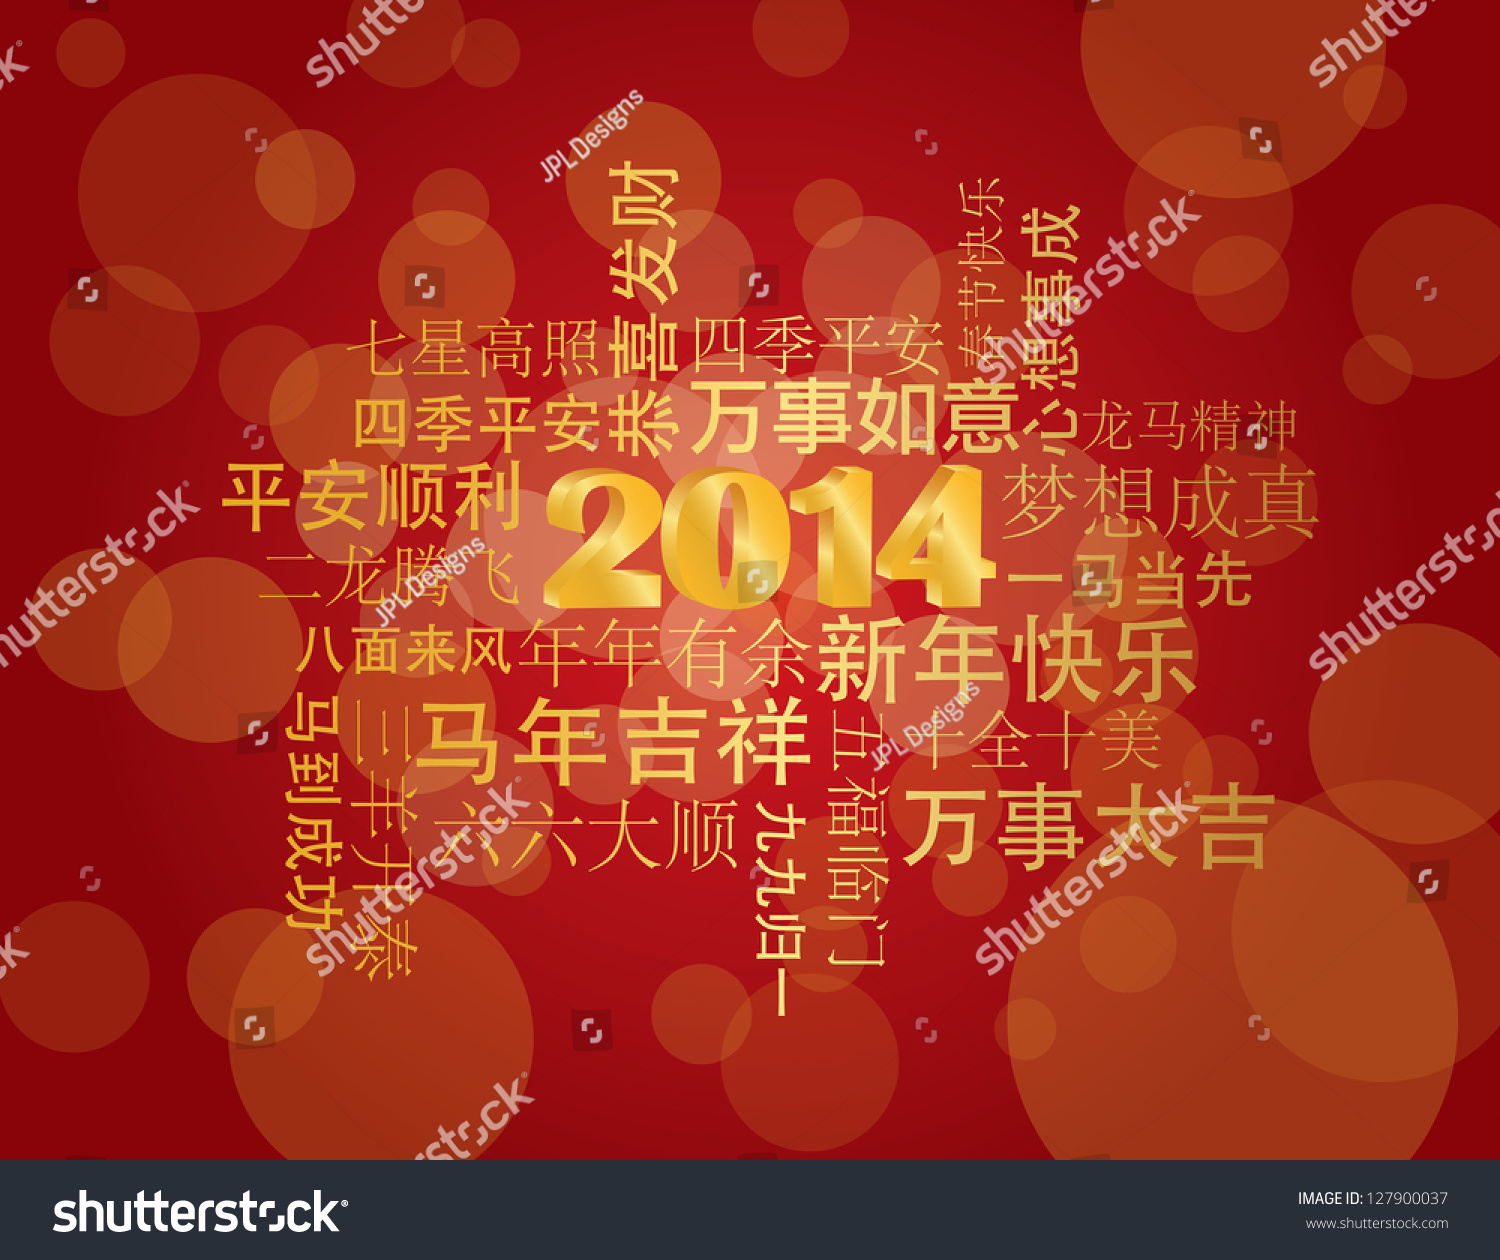 2014 chinese lunar new year greetings stock vector 127900037 2014 chinese lunar new year greetings text wishing health good fortune prosperity happiness in the year m4hsunfo